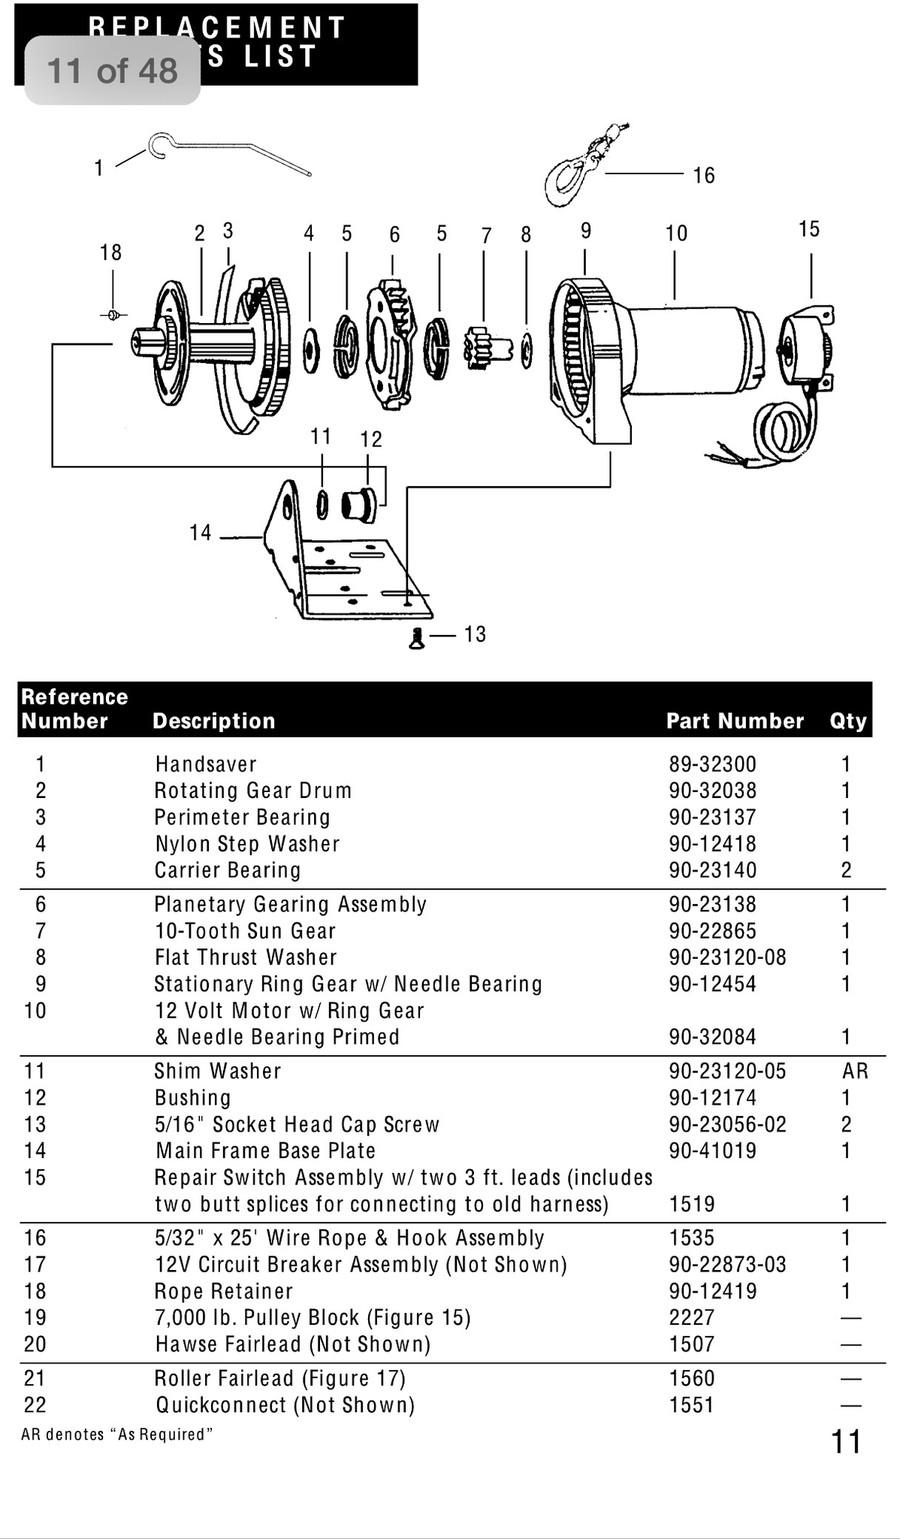 Superwinch replacement motor for EX1